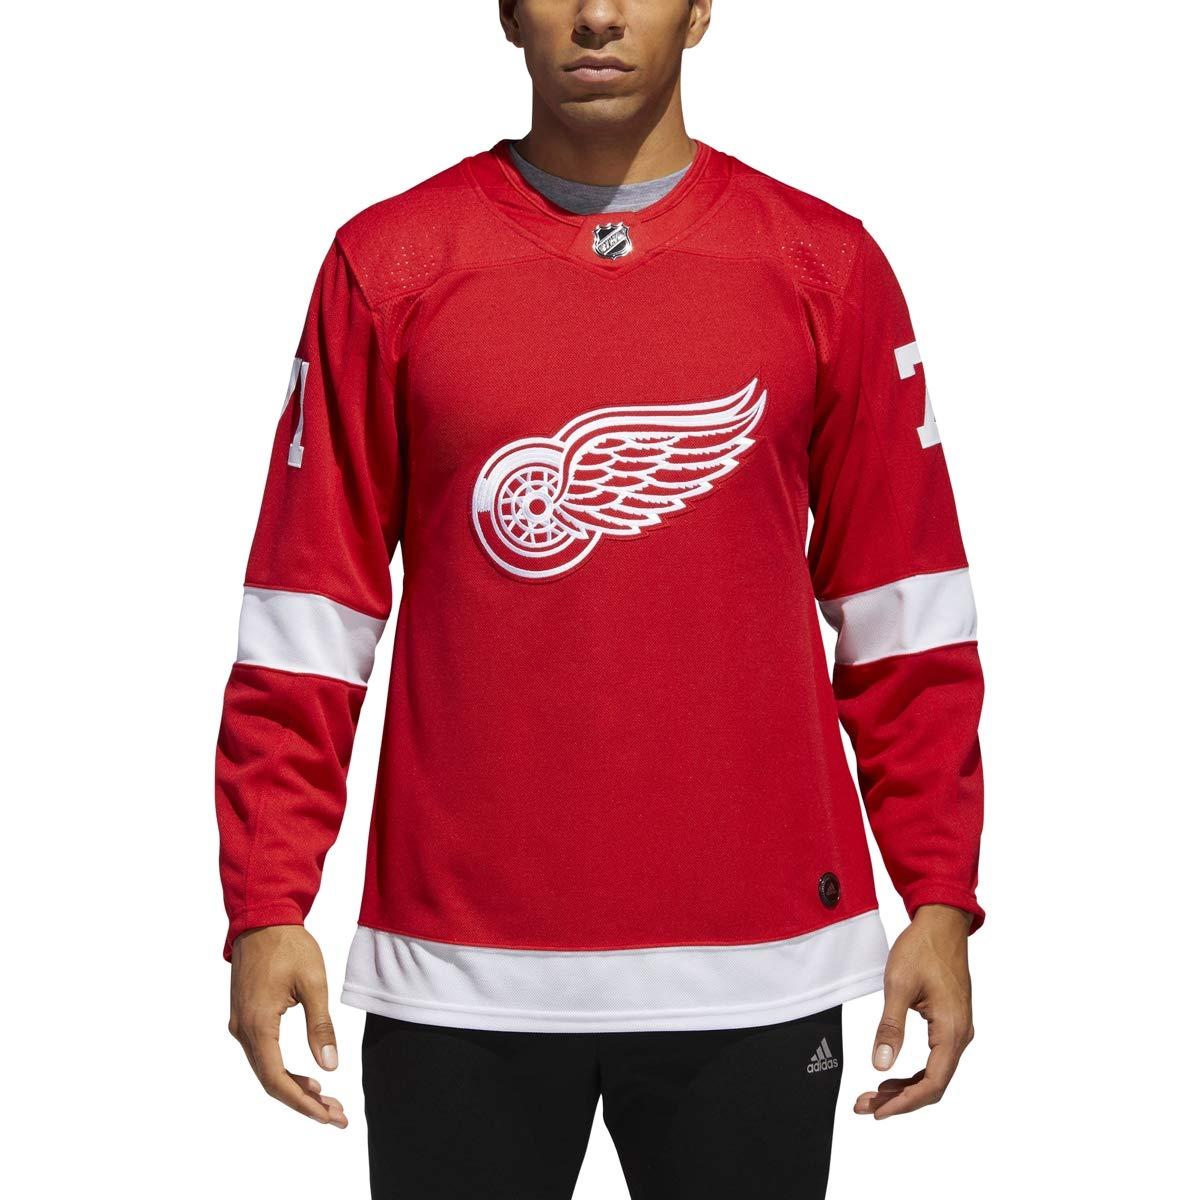 Detriot Red Wings Adidas AdiZero Authentic NHL Hockey